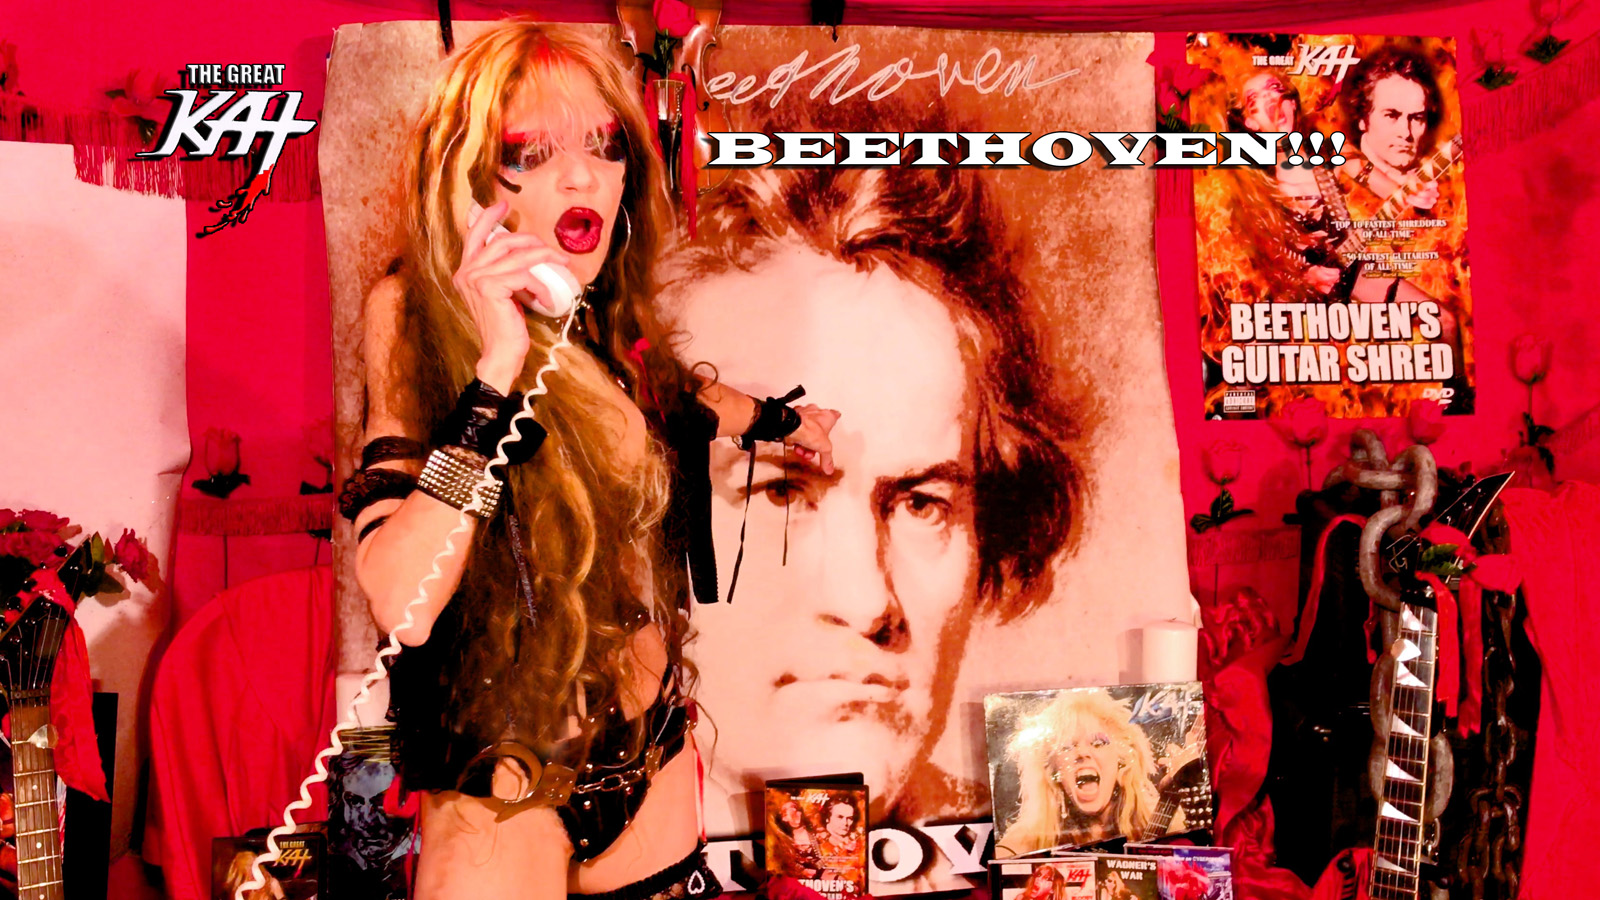 BEETHOVEN!!! FROM GREAT KAT INTERVIEW PHOTOS!